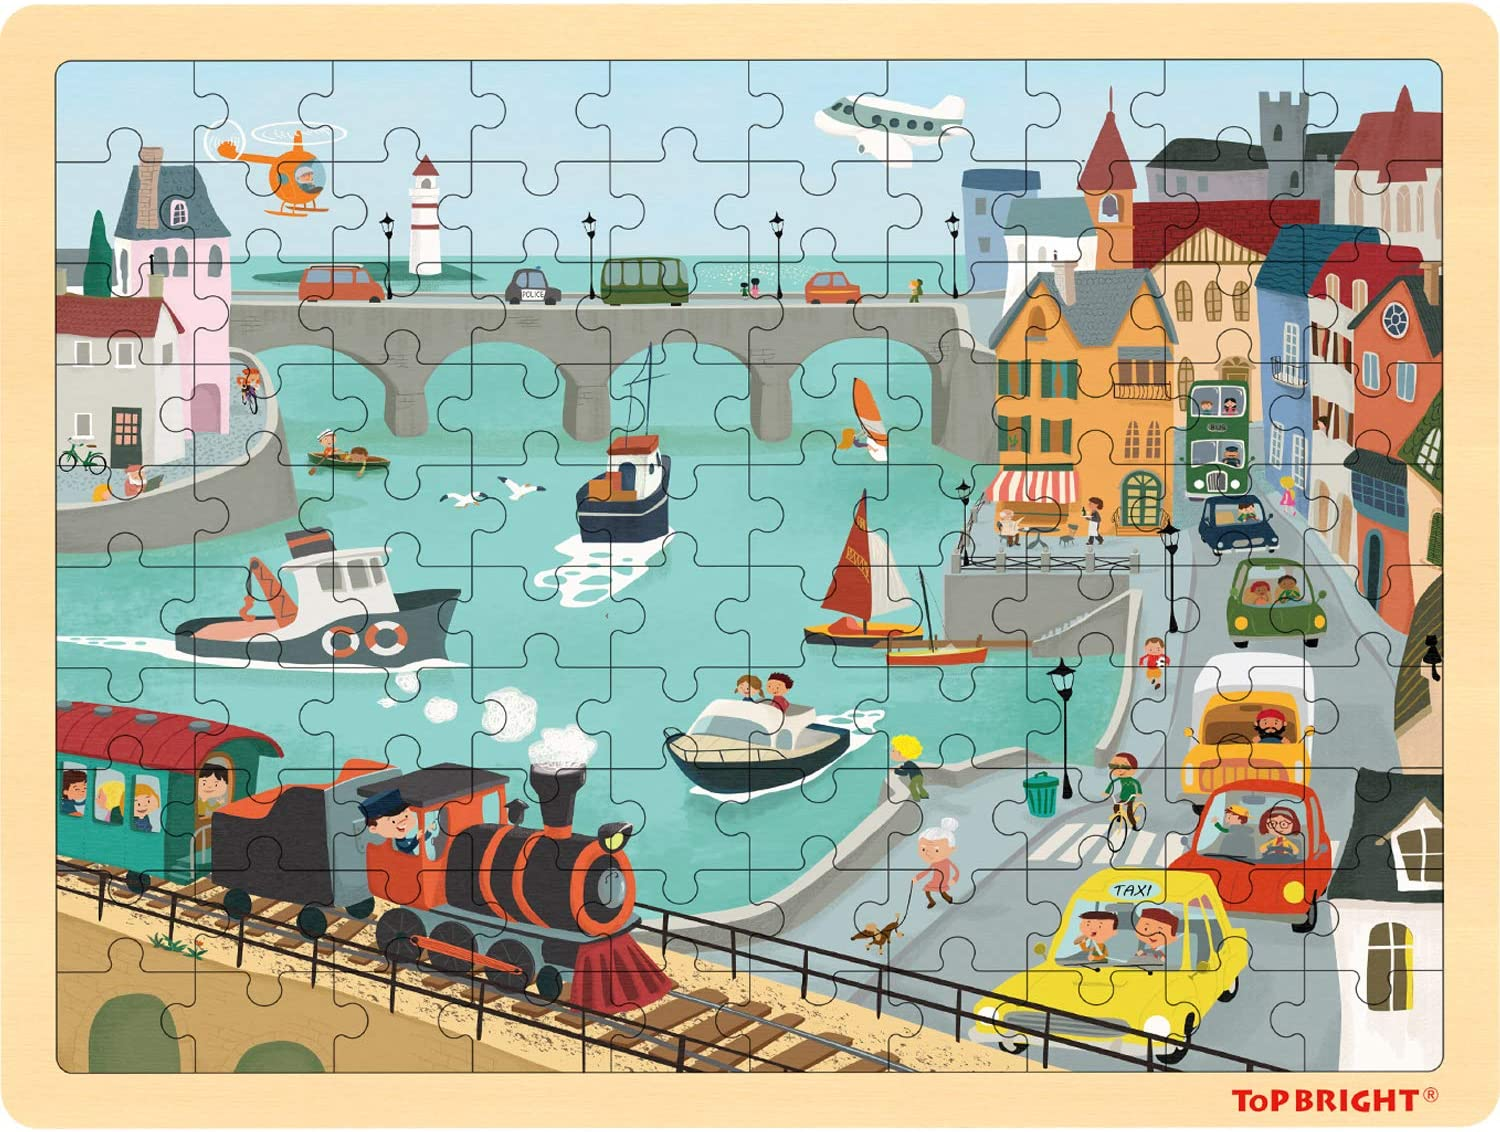 TOP BRIGHT Overseas Free shipping parallel import regular item 100 Piece Puzzles for Kids - Pu 4-8 Ages Urban Jigsaw